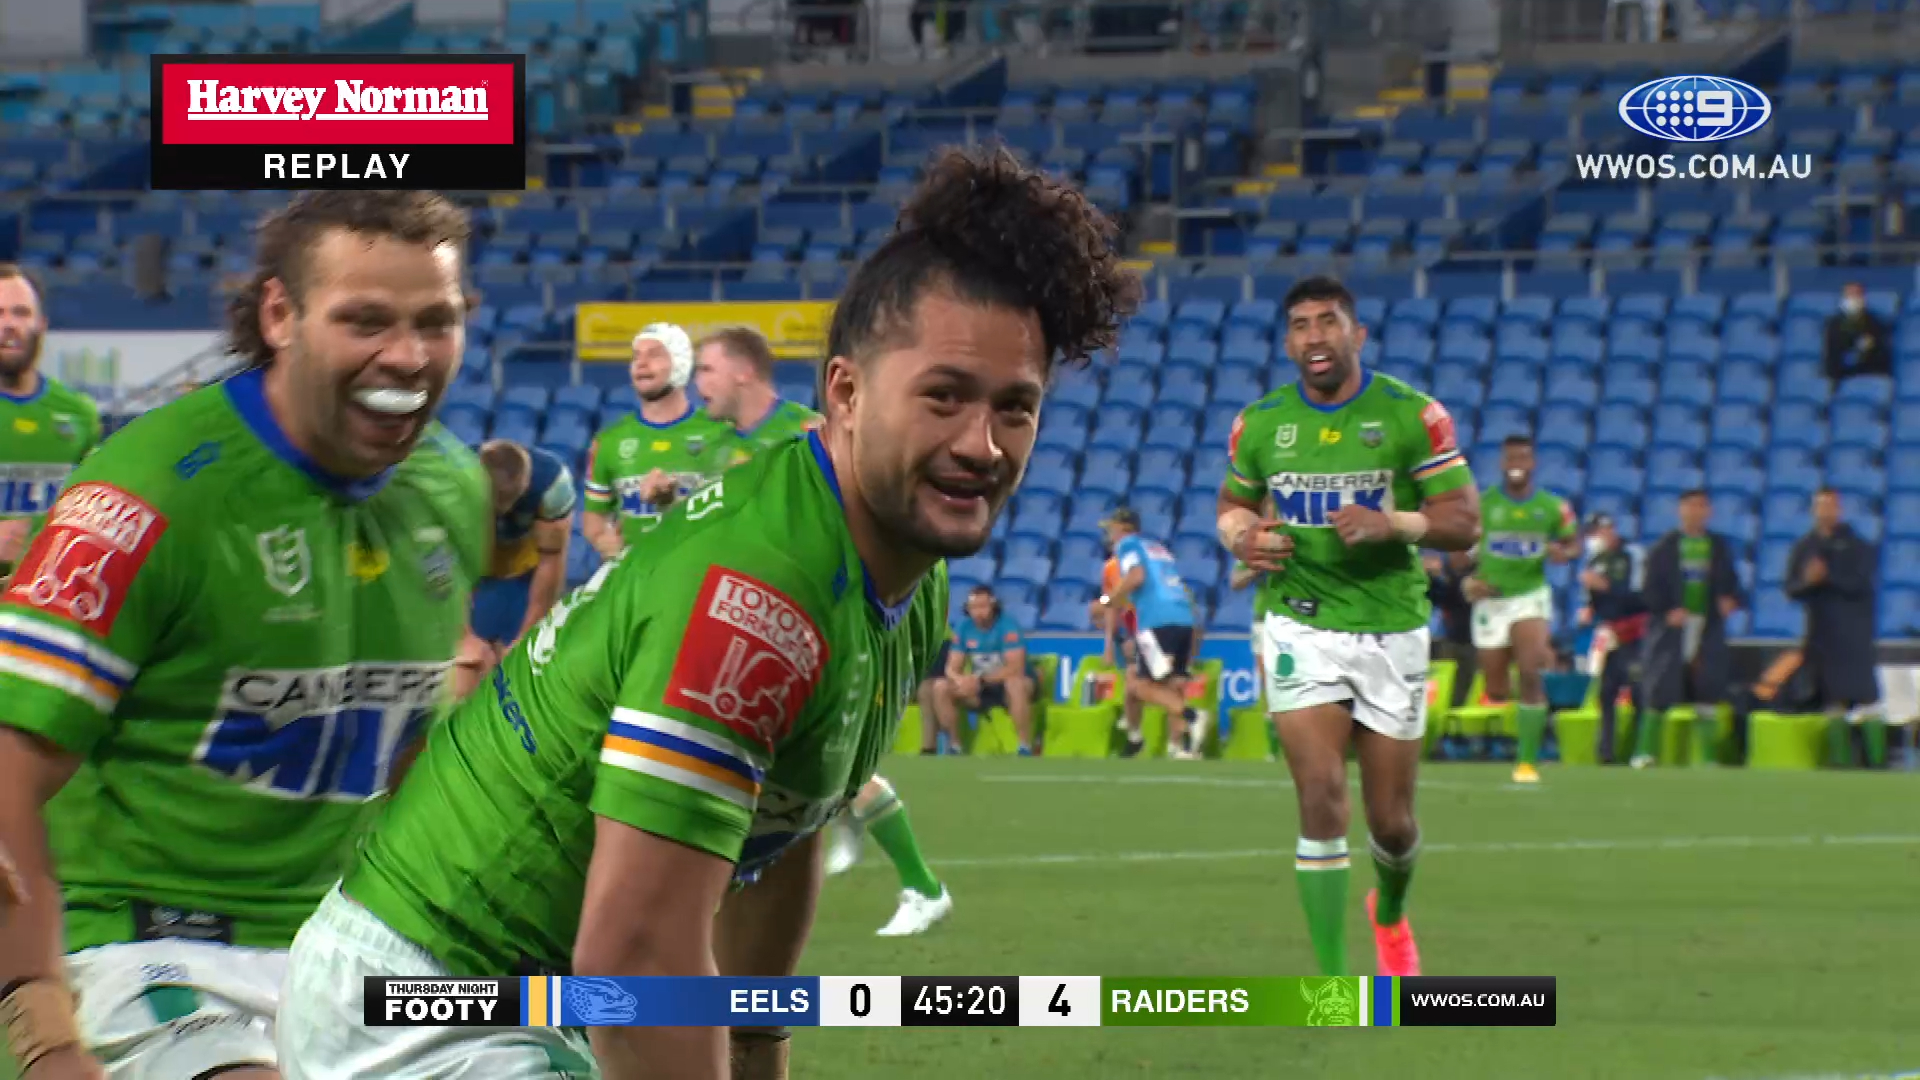 NRL Highlights: The Raiders beat the Eels in a defensive showdown - Round 19